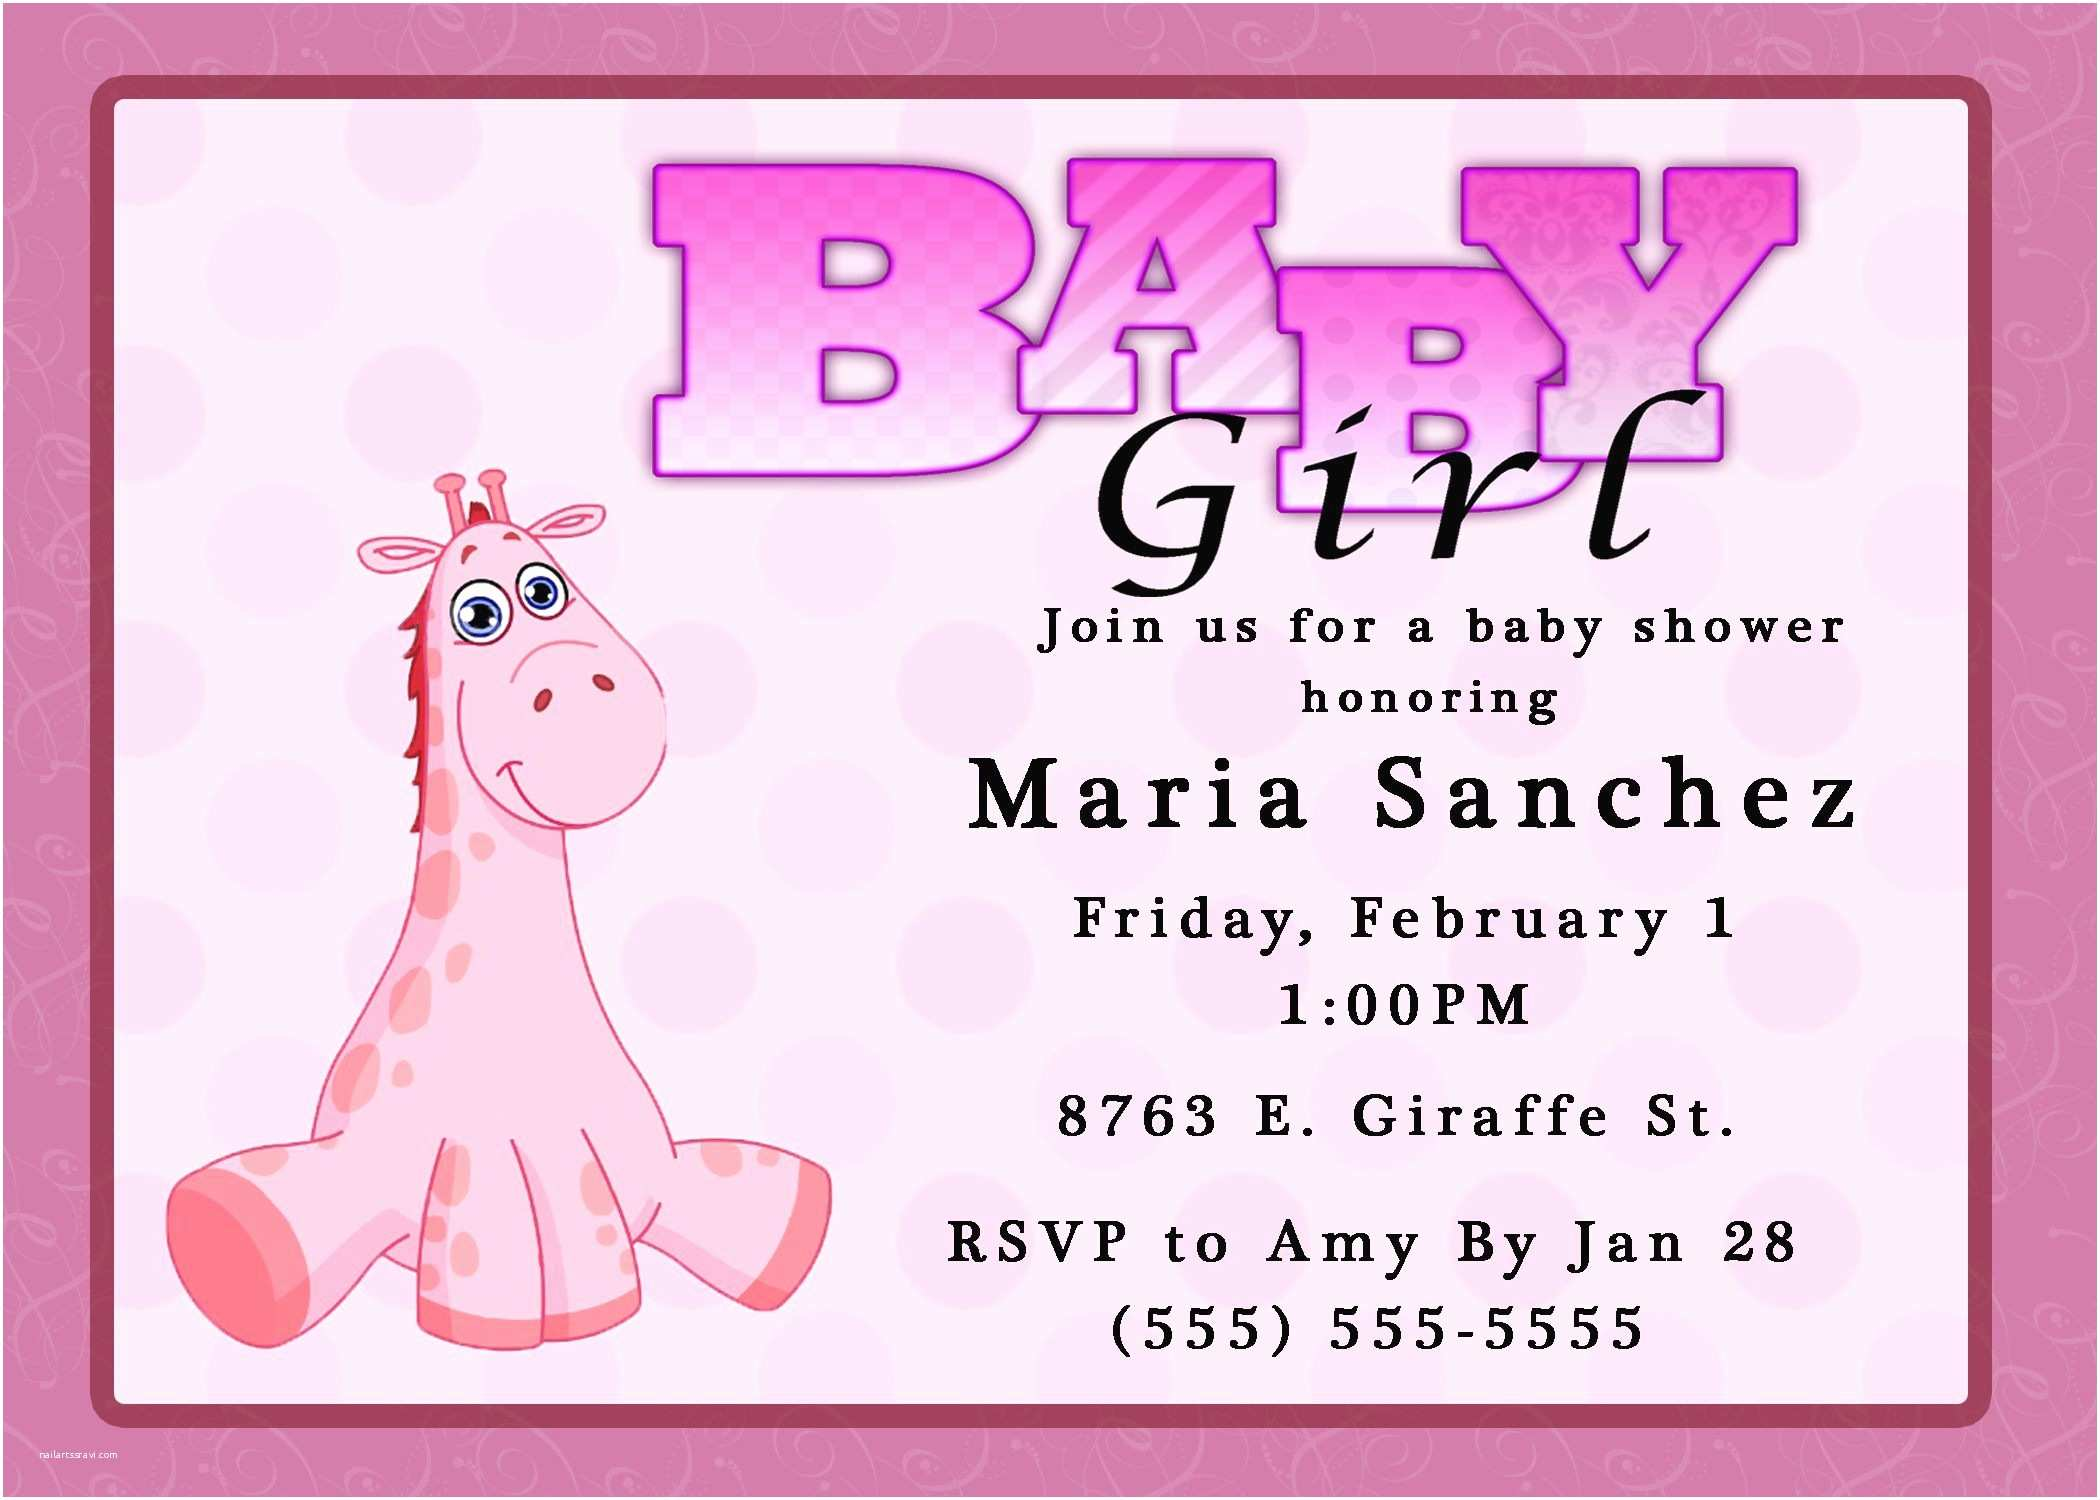 Baby Girl Shower Invitations Baby Shower Invitation Baby Girl Shower Invitations